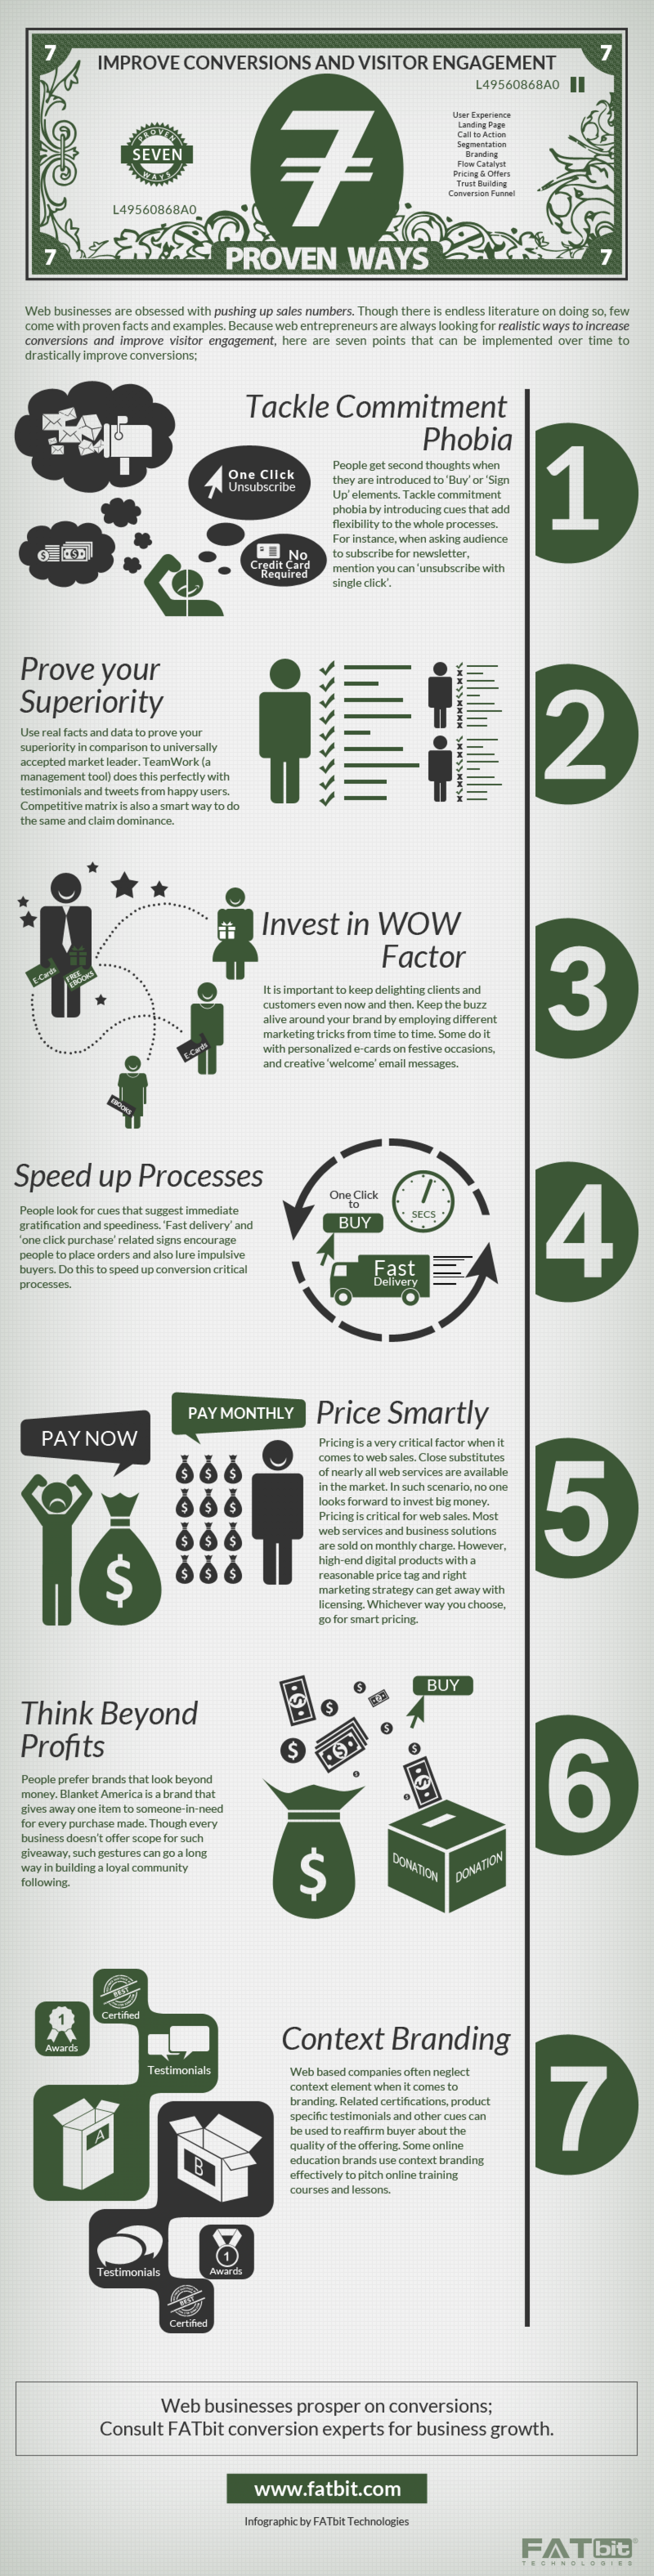 7 Proven Ways to Improve Conversion and Visitor Engagement  Infographic